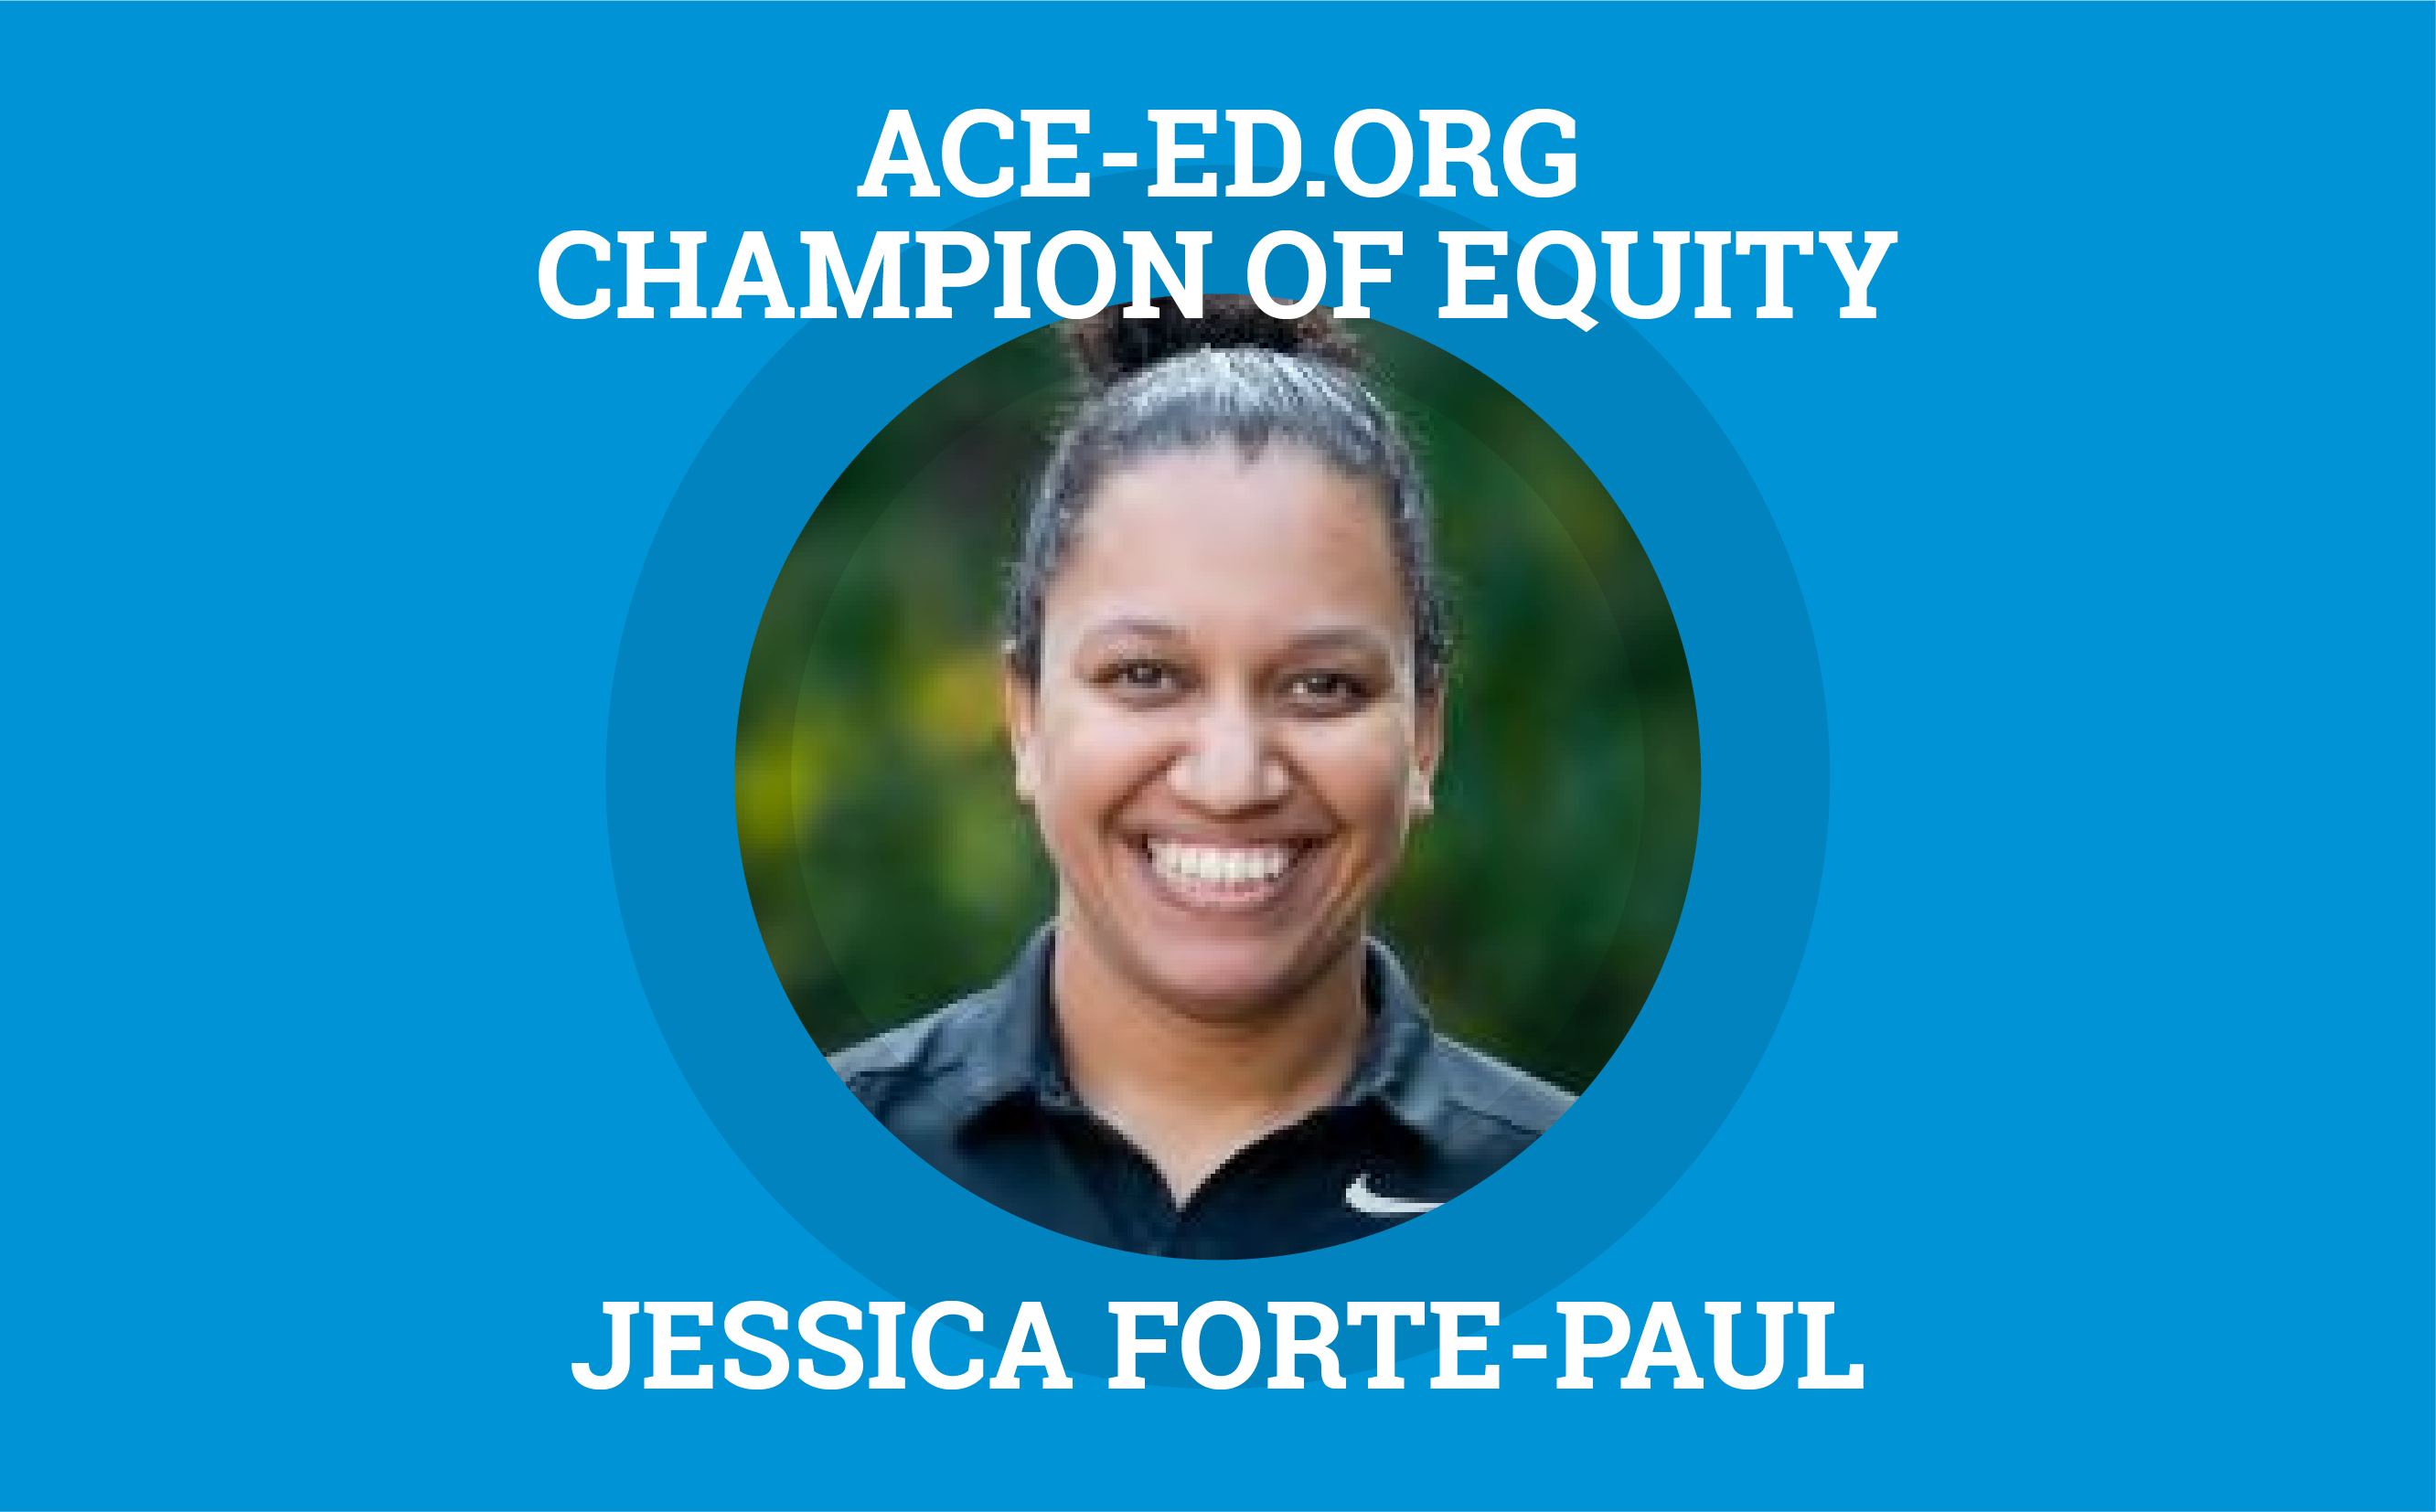 Jessica Forte-Paul, Champion of Equity